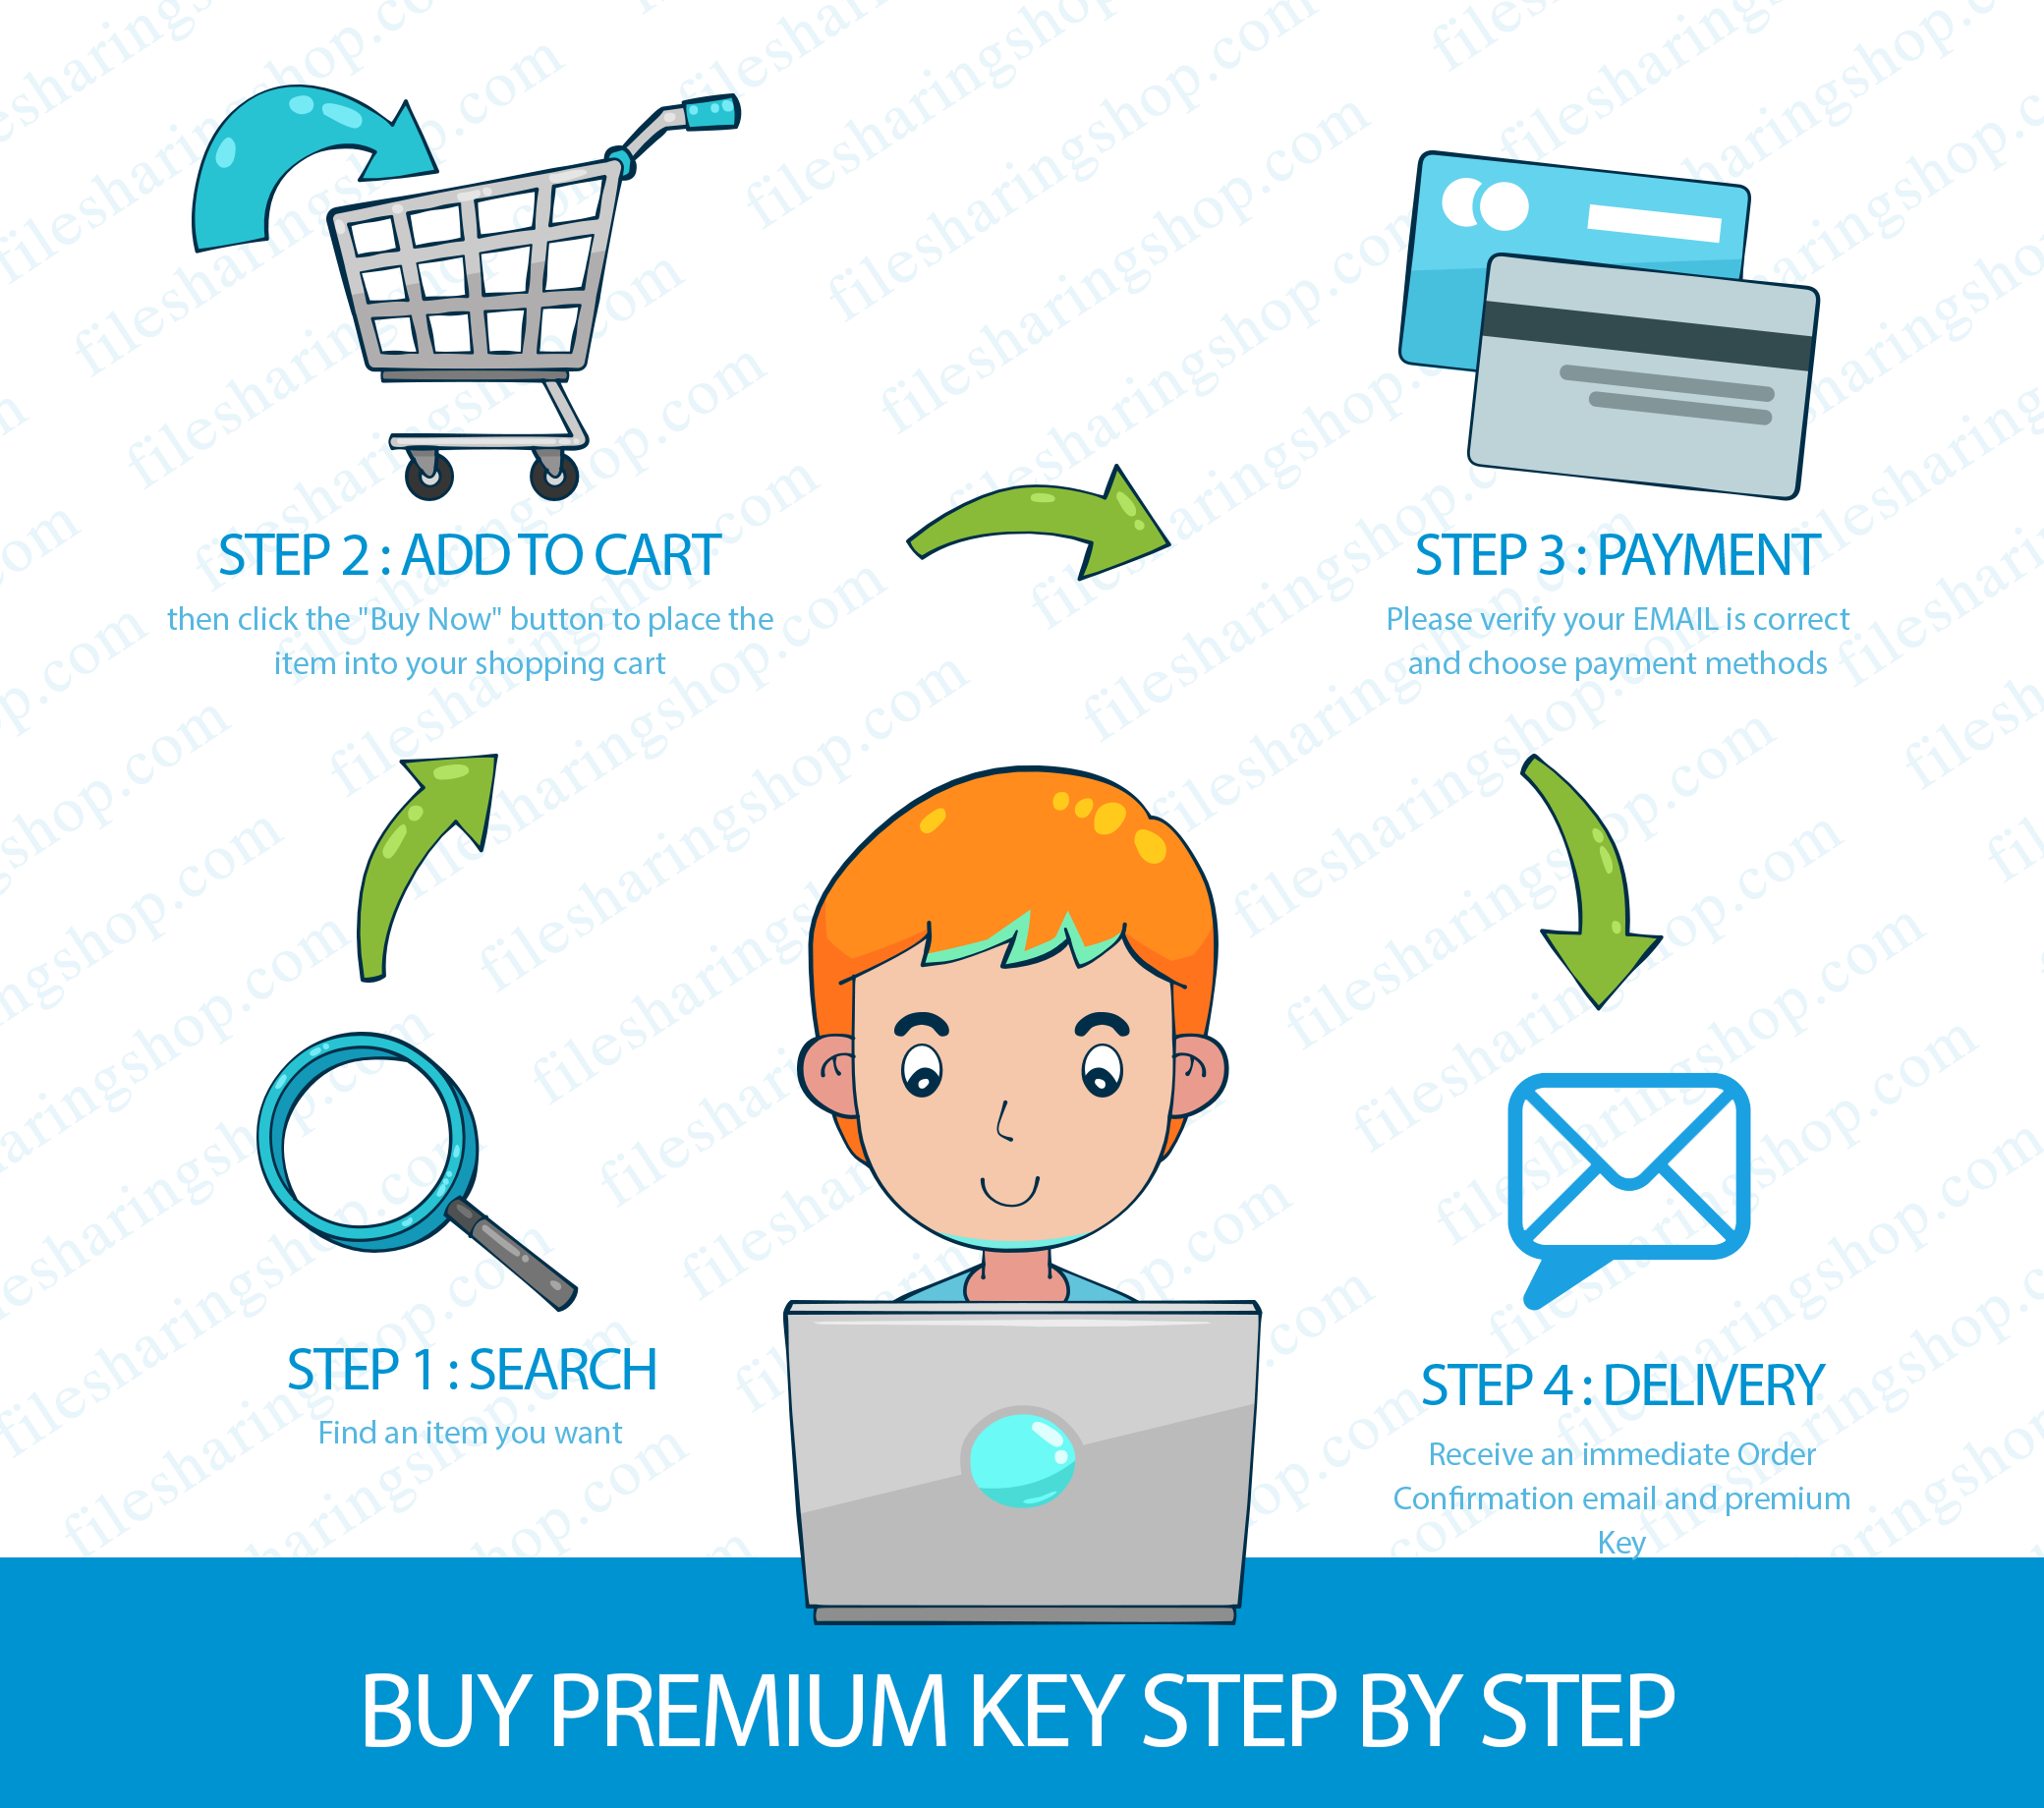 HOW TO BUY EASYBYTEZ PREMIUM